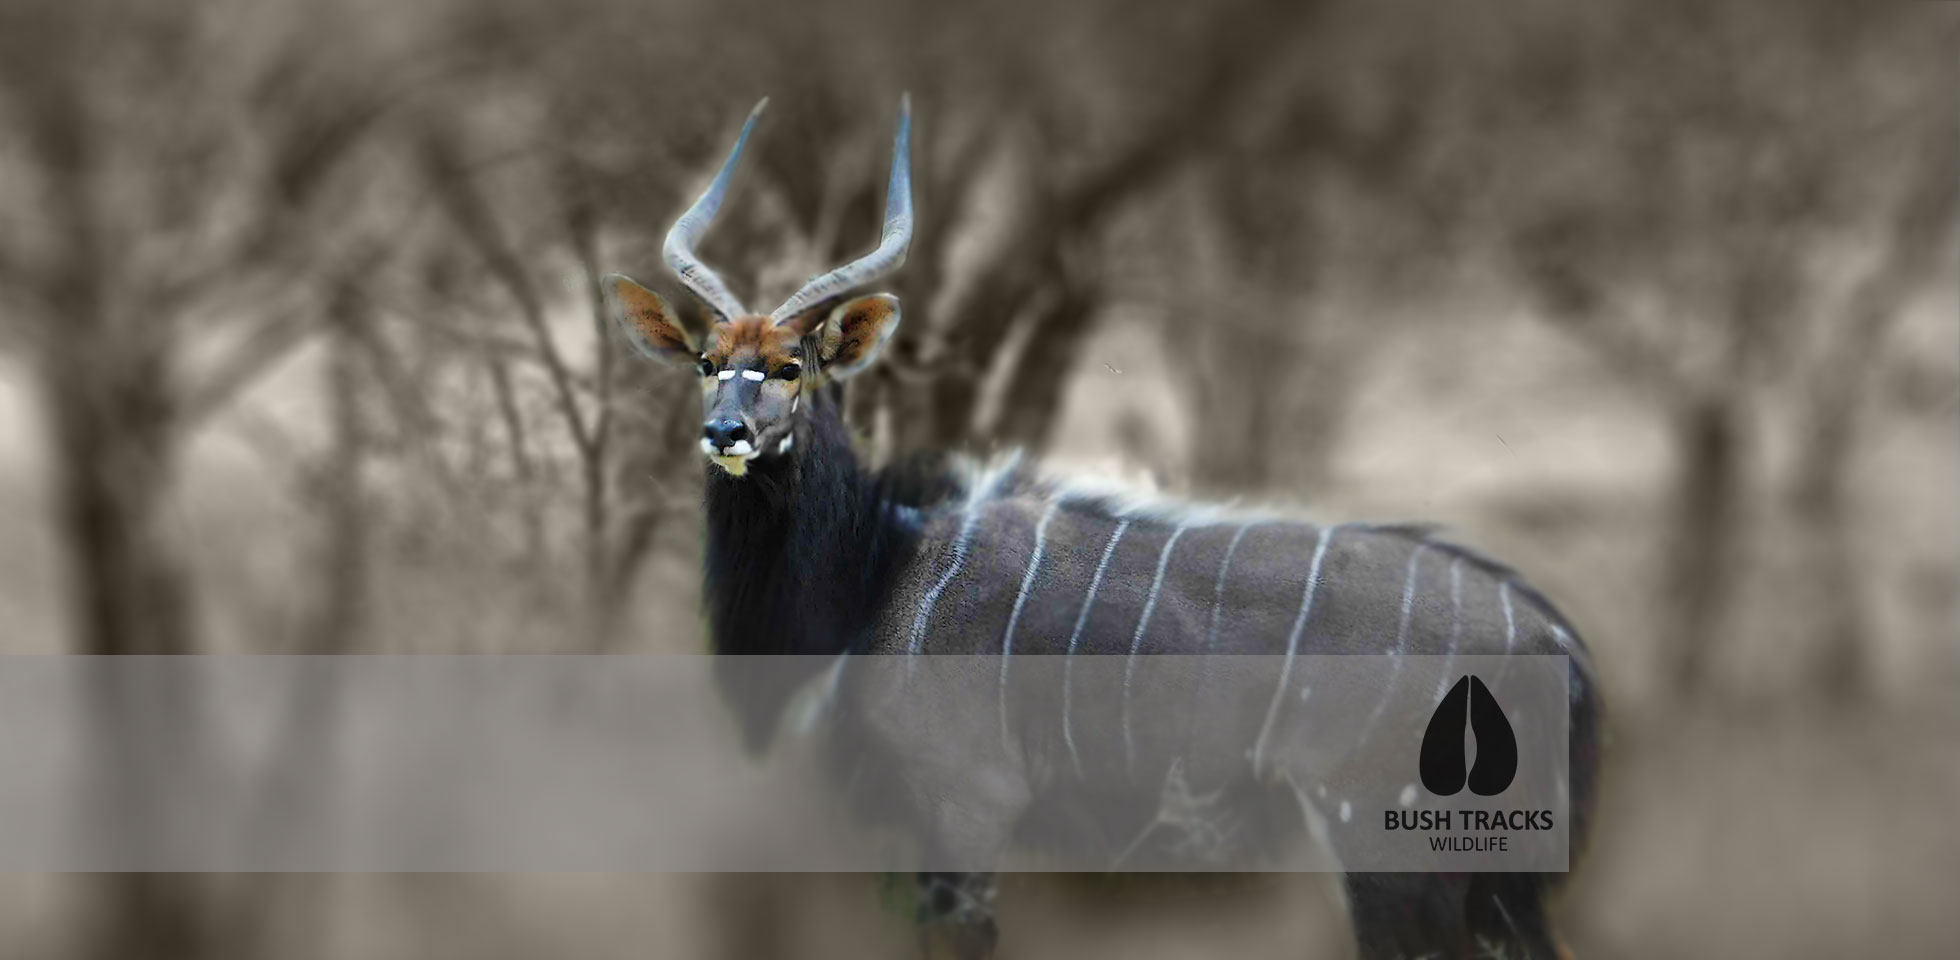 Peri Peri Creative - NYALA-Bush tracks-Wildlife